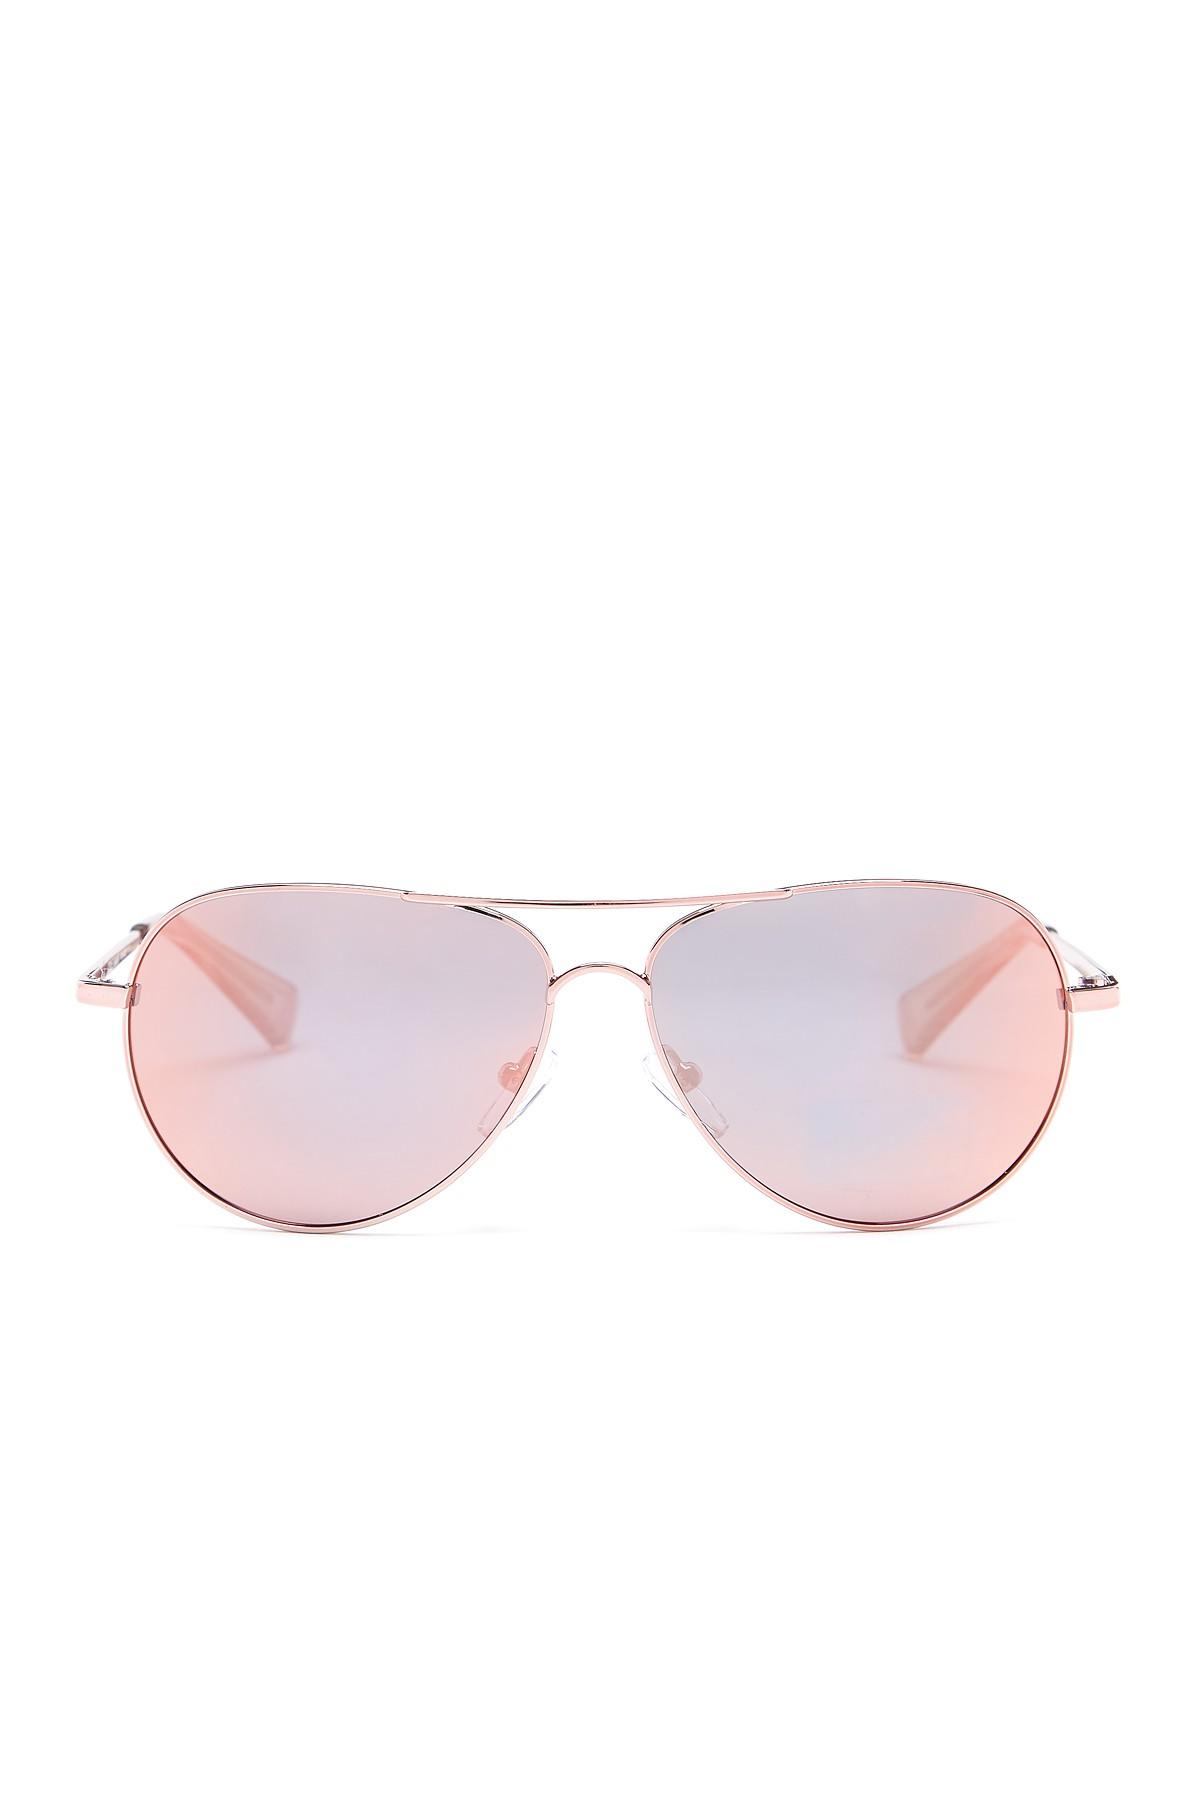 50880c179c Cole Haan Small Aviator Metal Frame Sunglasses in Pink - Lyst